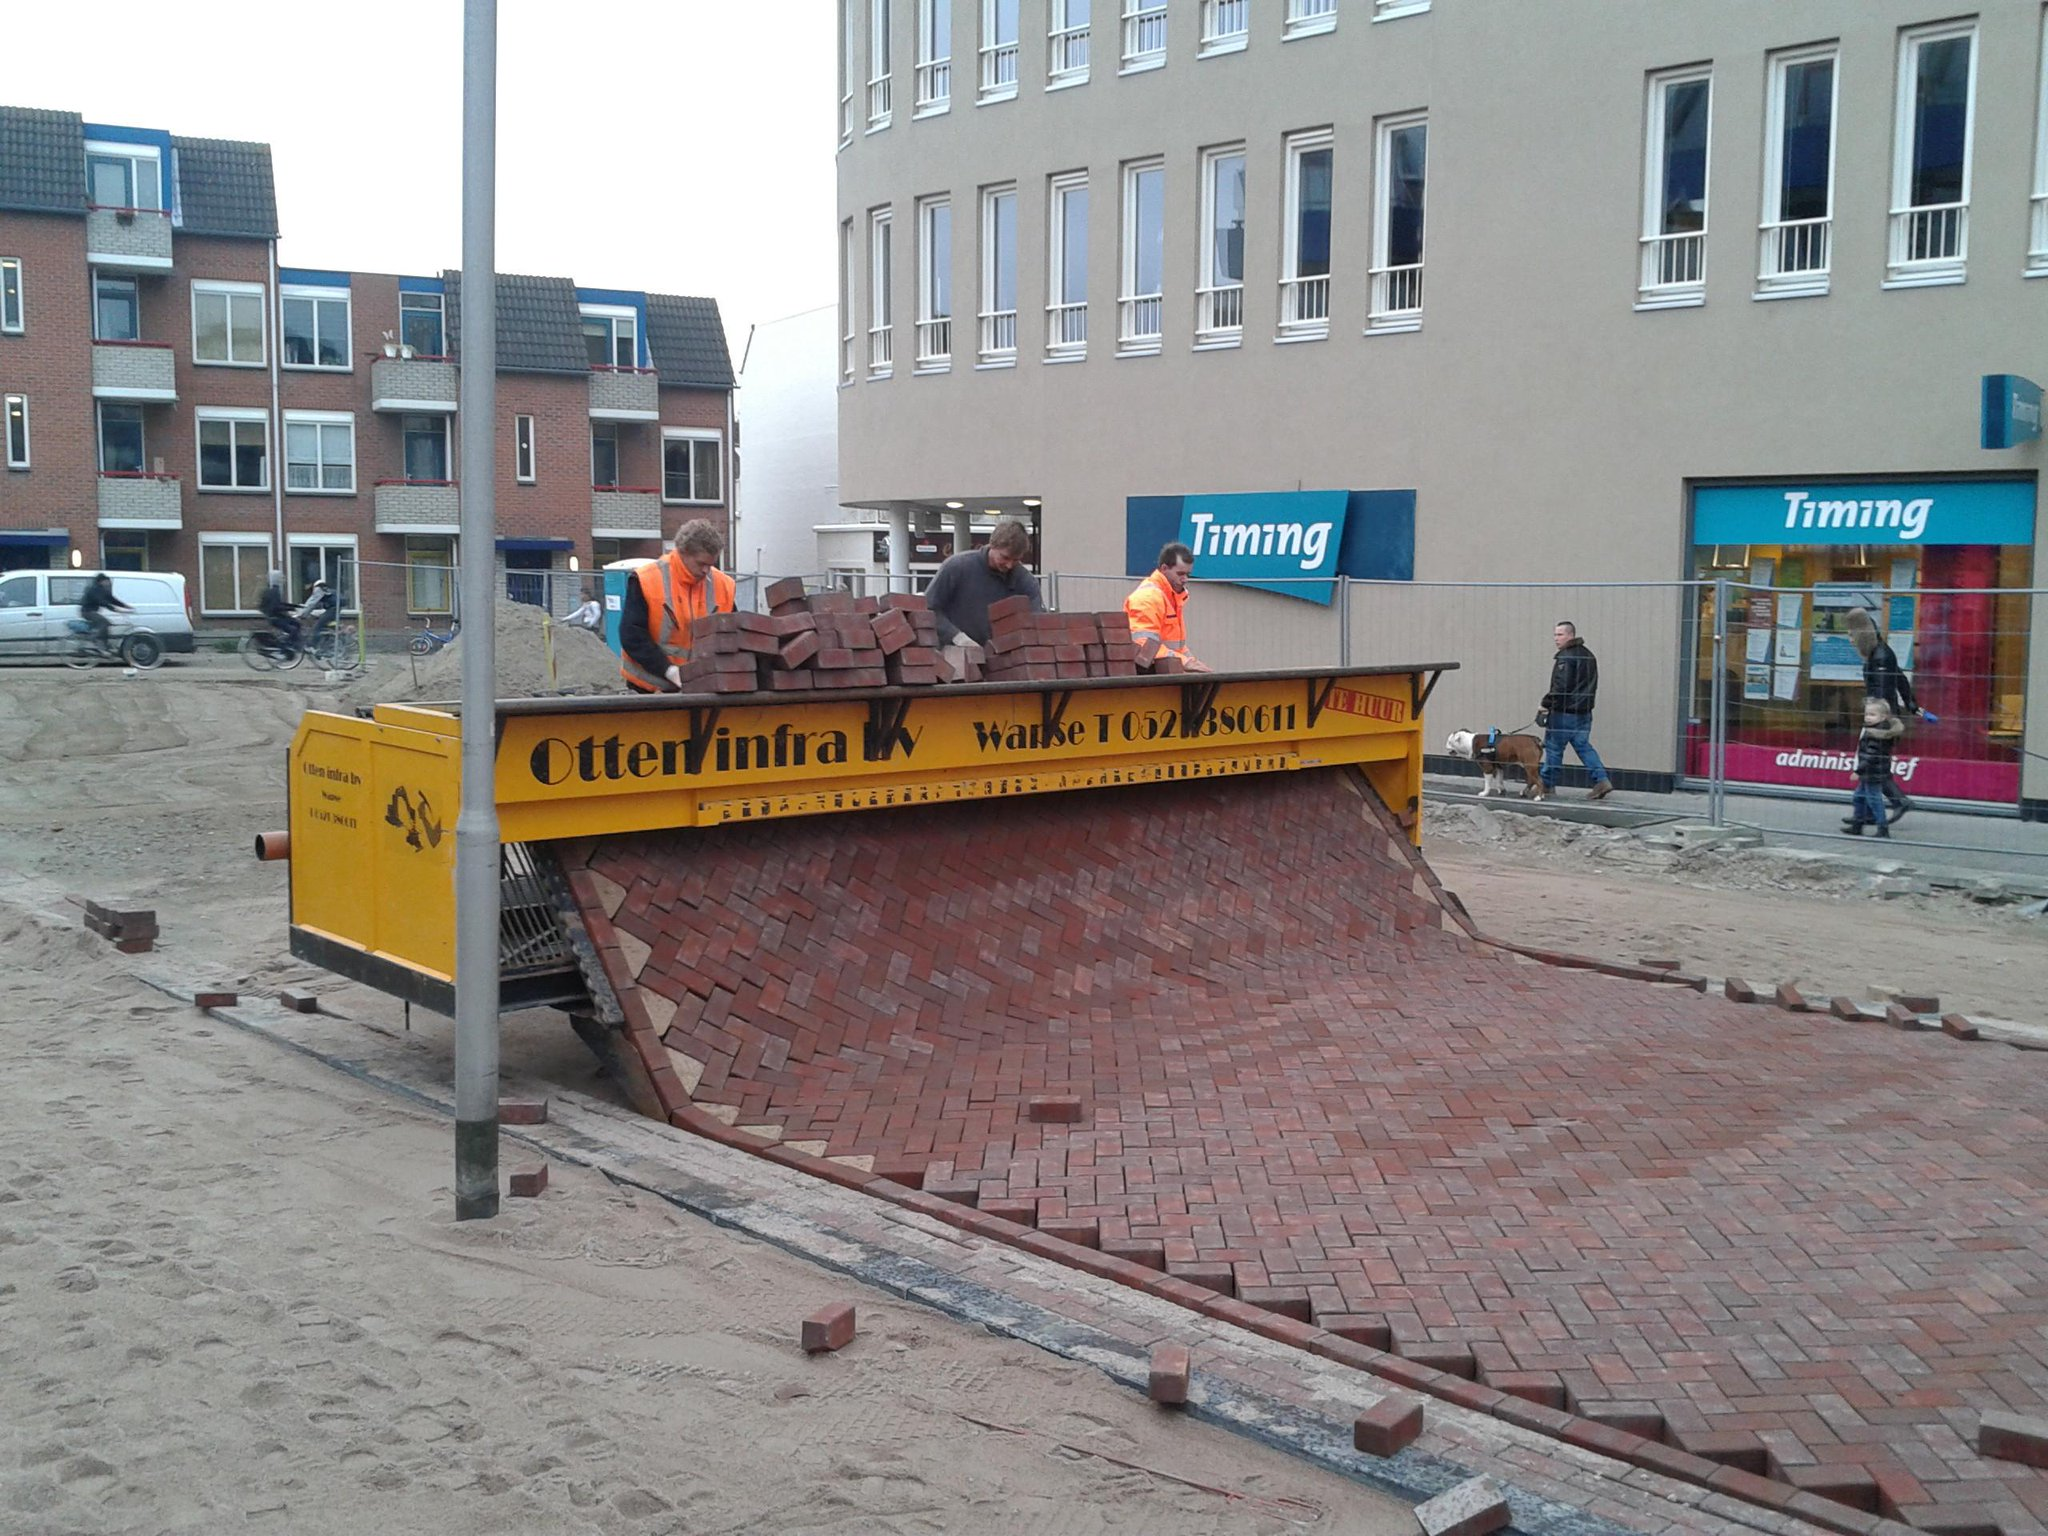 This is how brick streets are laid in the Netherlands http://t.co/86k5pymUHB